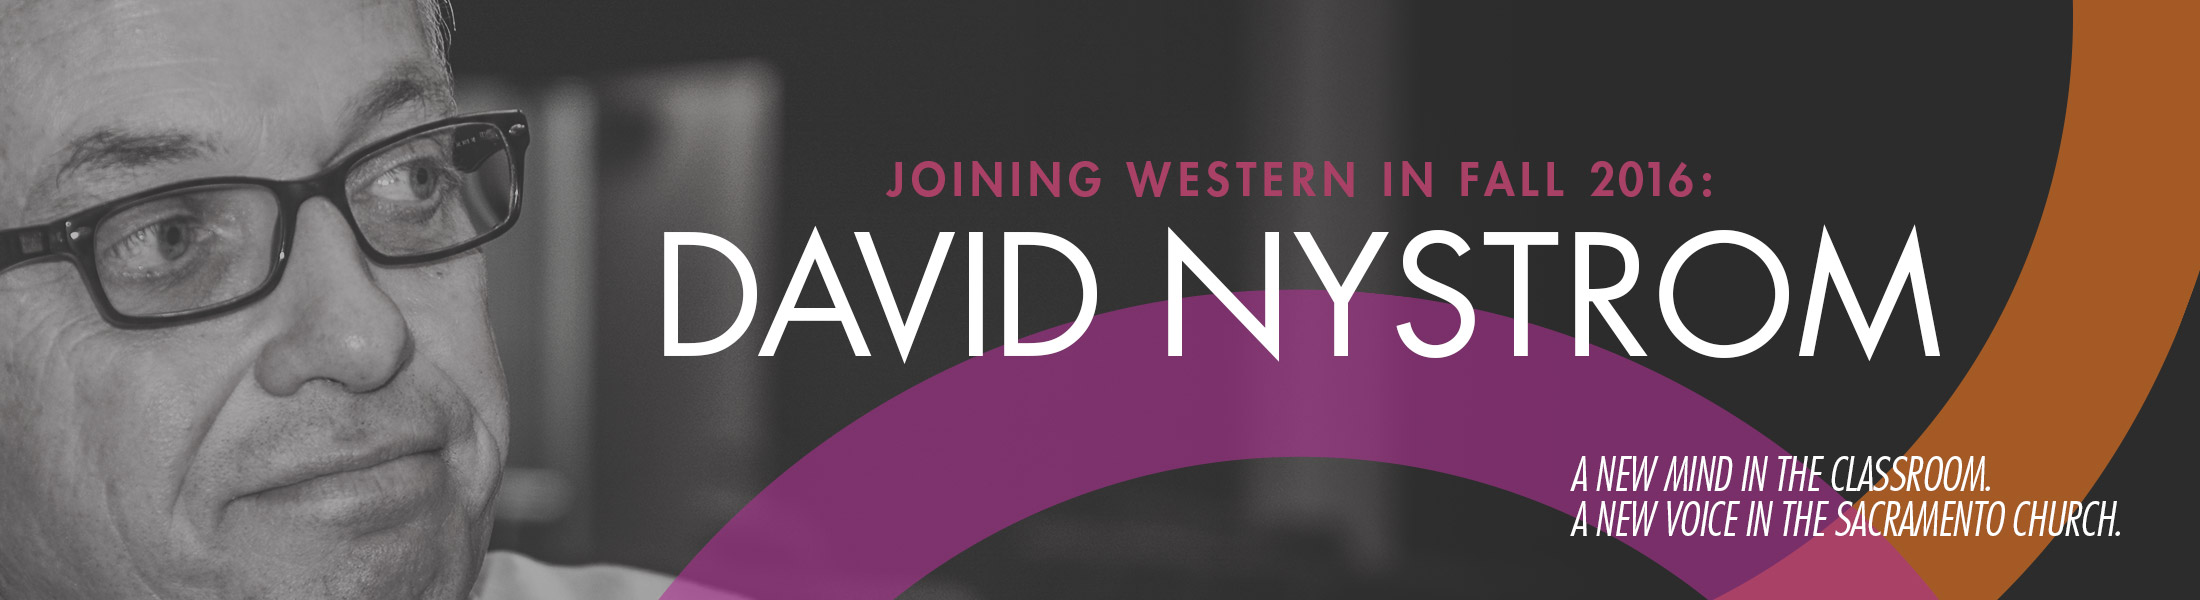 Dr. David Nystrom joins Western Seminary Sacramento Campus